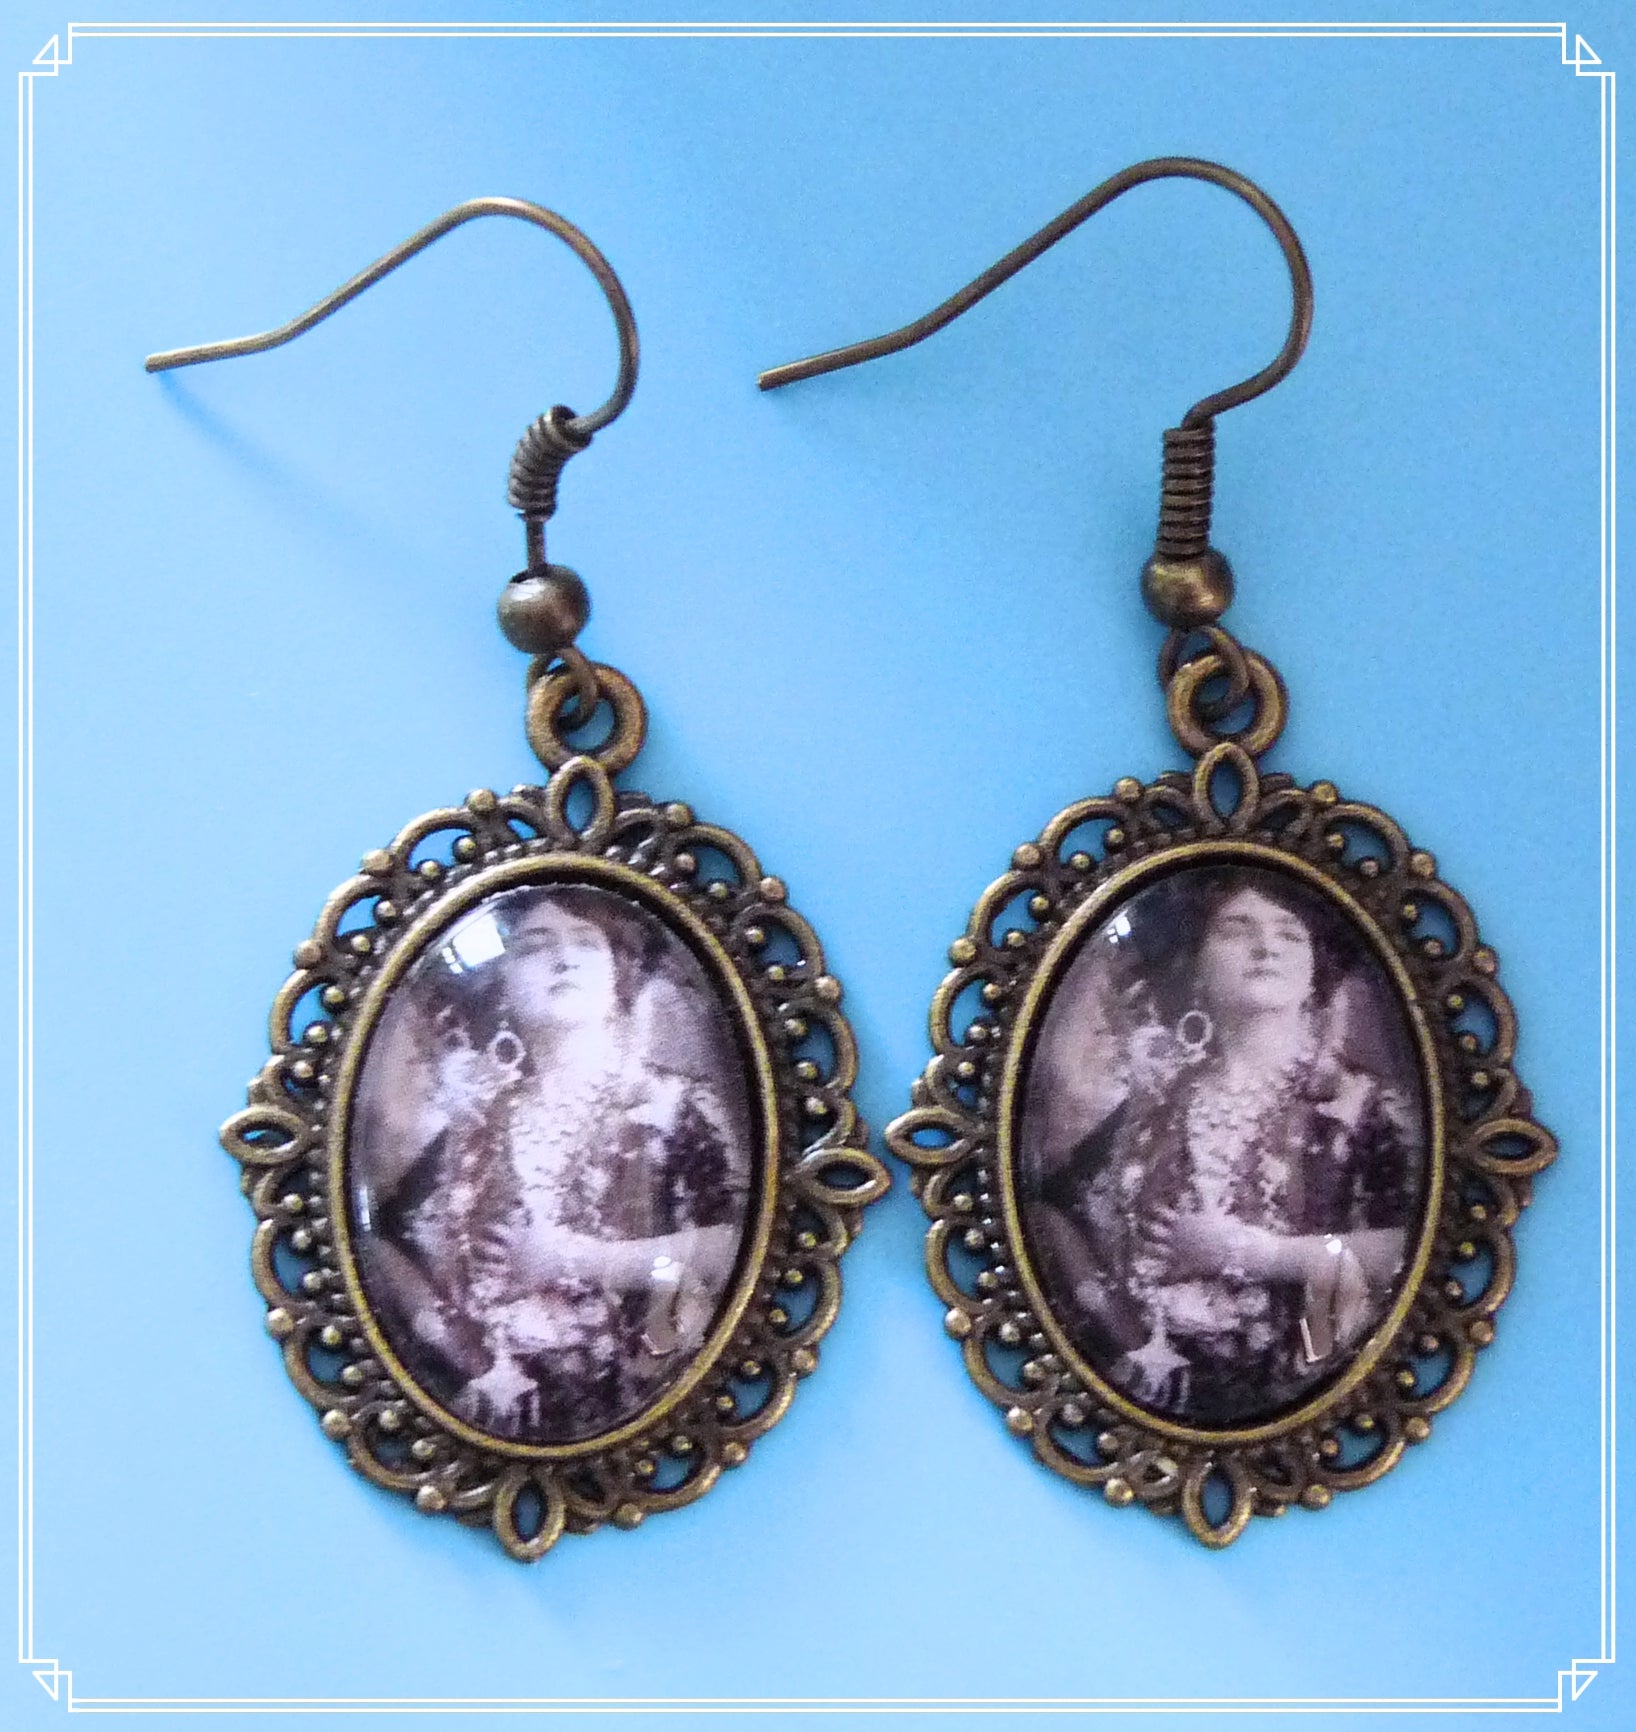 Velvet & Lace - Marguerite earrings